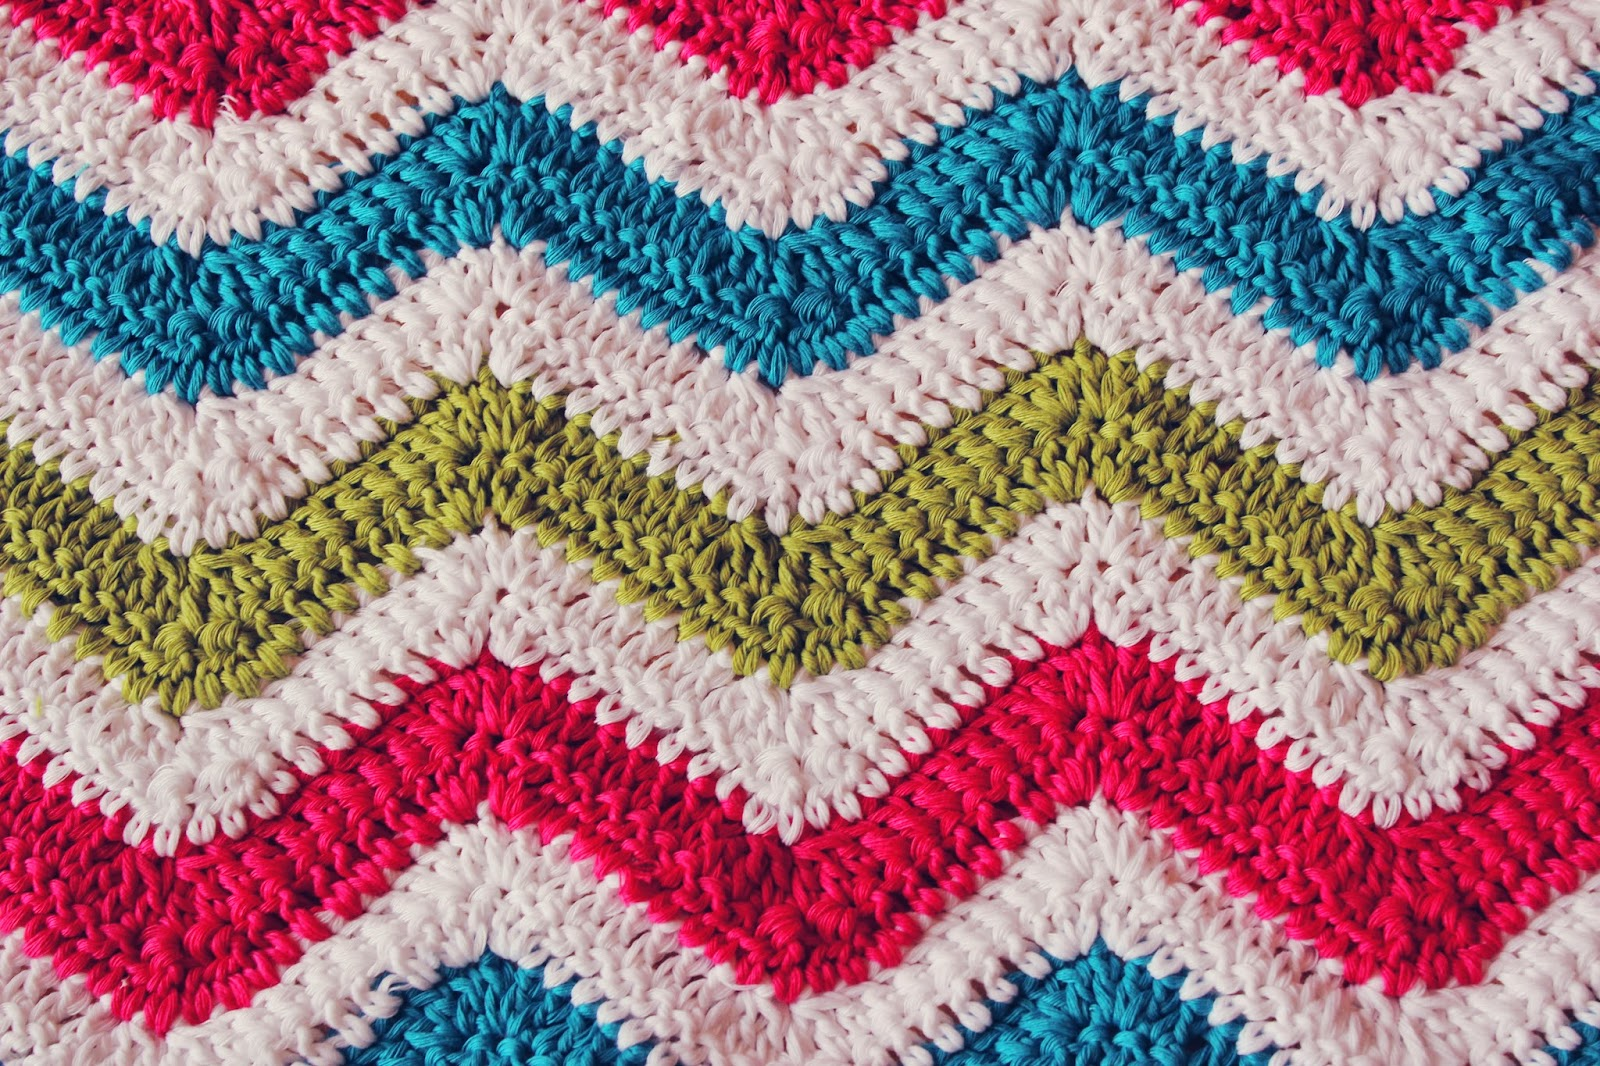 Misadventures of alice the perfect crochet ripple blanket pattern ripple3g bankloansurffo Images